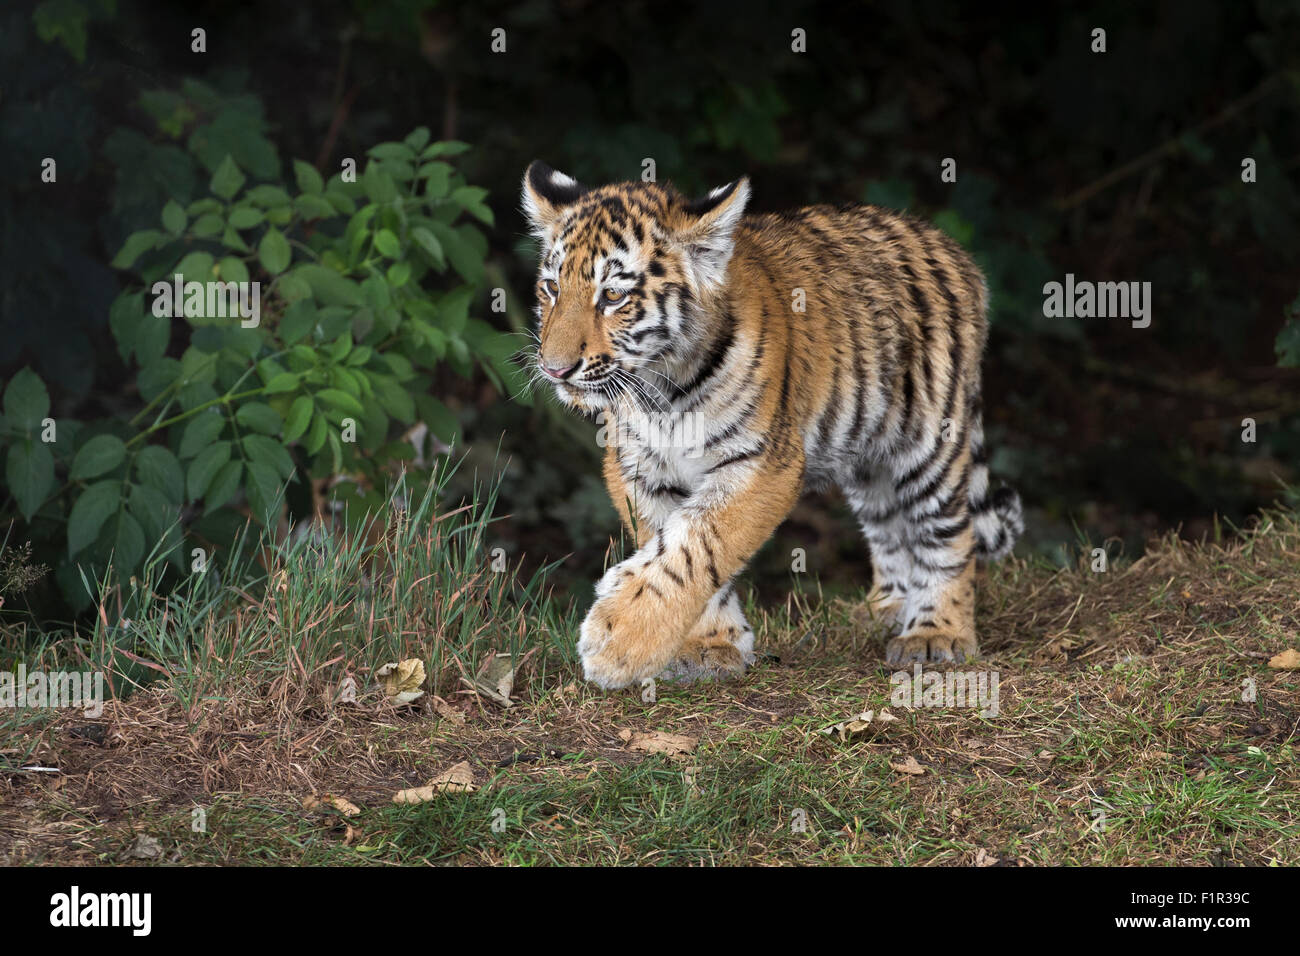 Amur tiger cub, 4 months old. - Stock Image